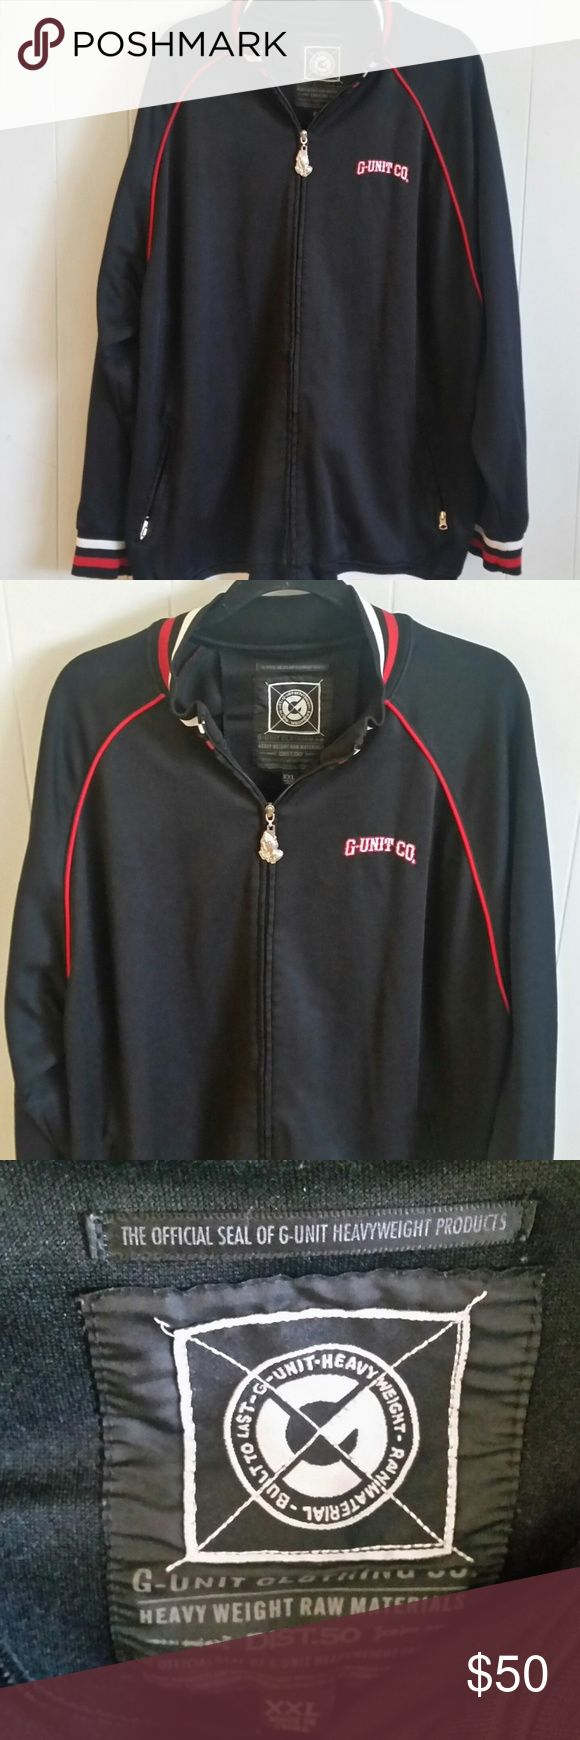 """VTG G Unit Clothing Co.Zip Up Jacket Size XXL VTG G Unit Clothing Co. Zip Up Jacket Streetwear Size XXL Rap Hip Hop, Praying Hands with Rosary on Zipper  Arm Pit to Arm Pit 27"""" and 29"""" Length G Unit Clothing Jackets & Coats"""